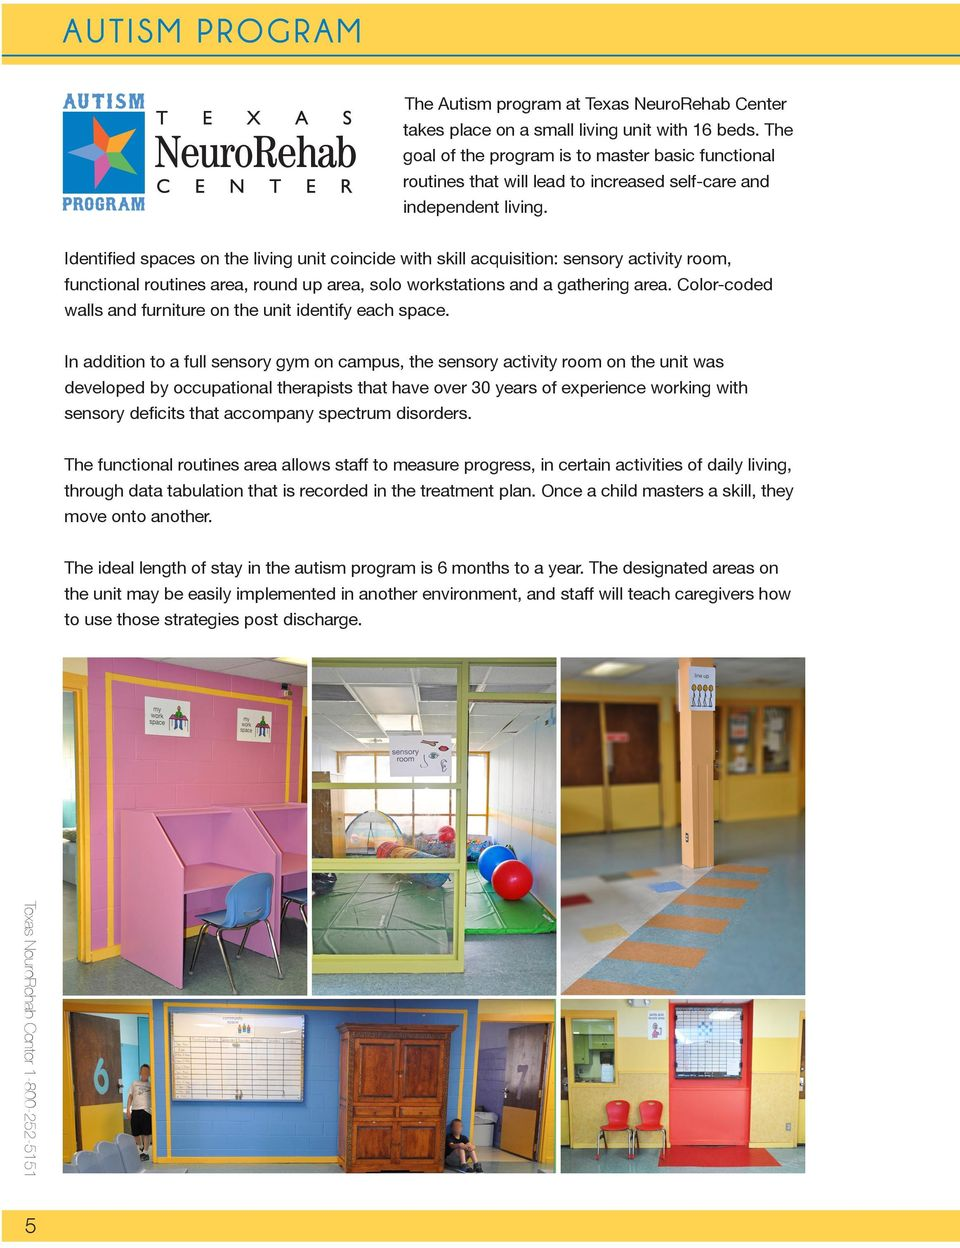 Identified spaces on the living unit coincide with skill acquisition: sensory activity room, functional routines area, round up area, solo workstations and a gathering area.